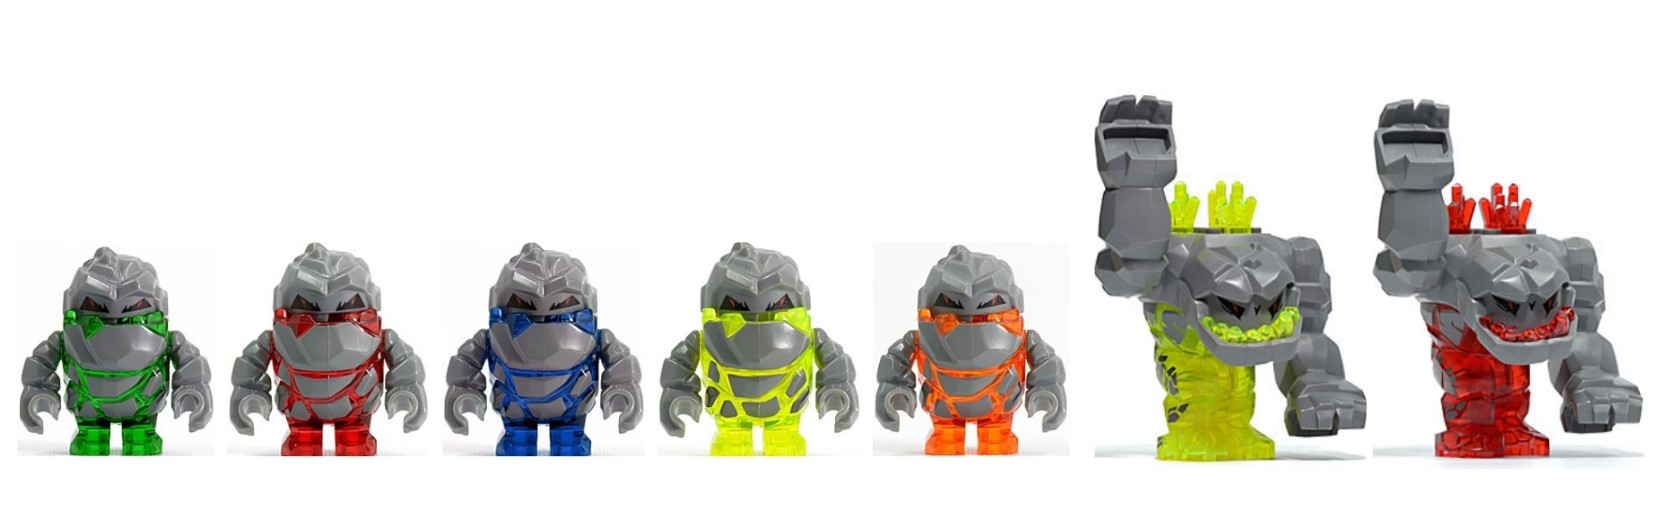 lego power miners rock monsters